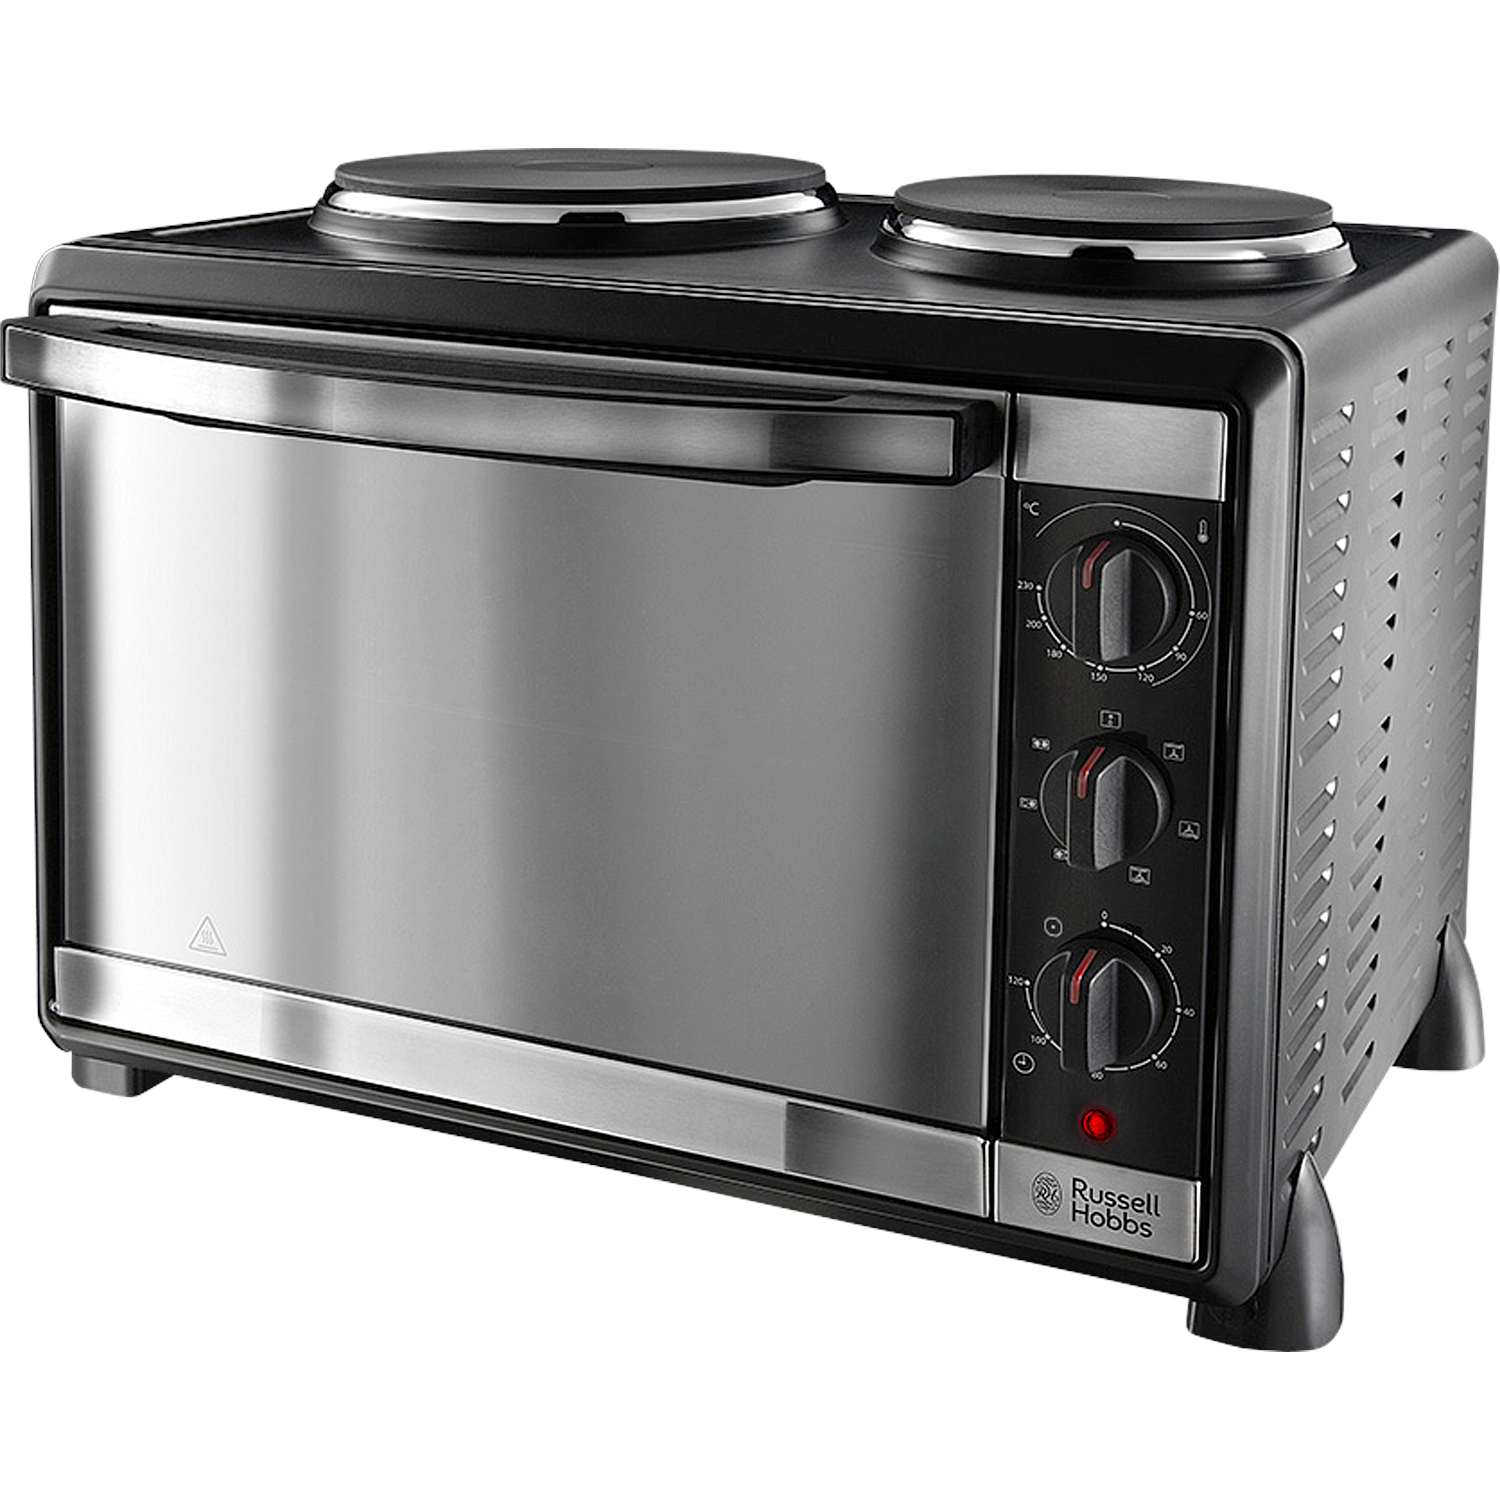 Hot plate oven